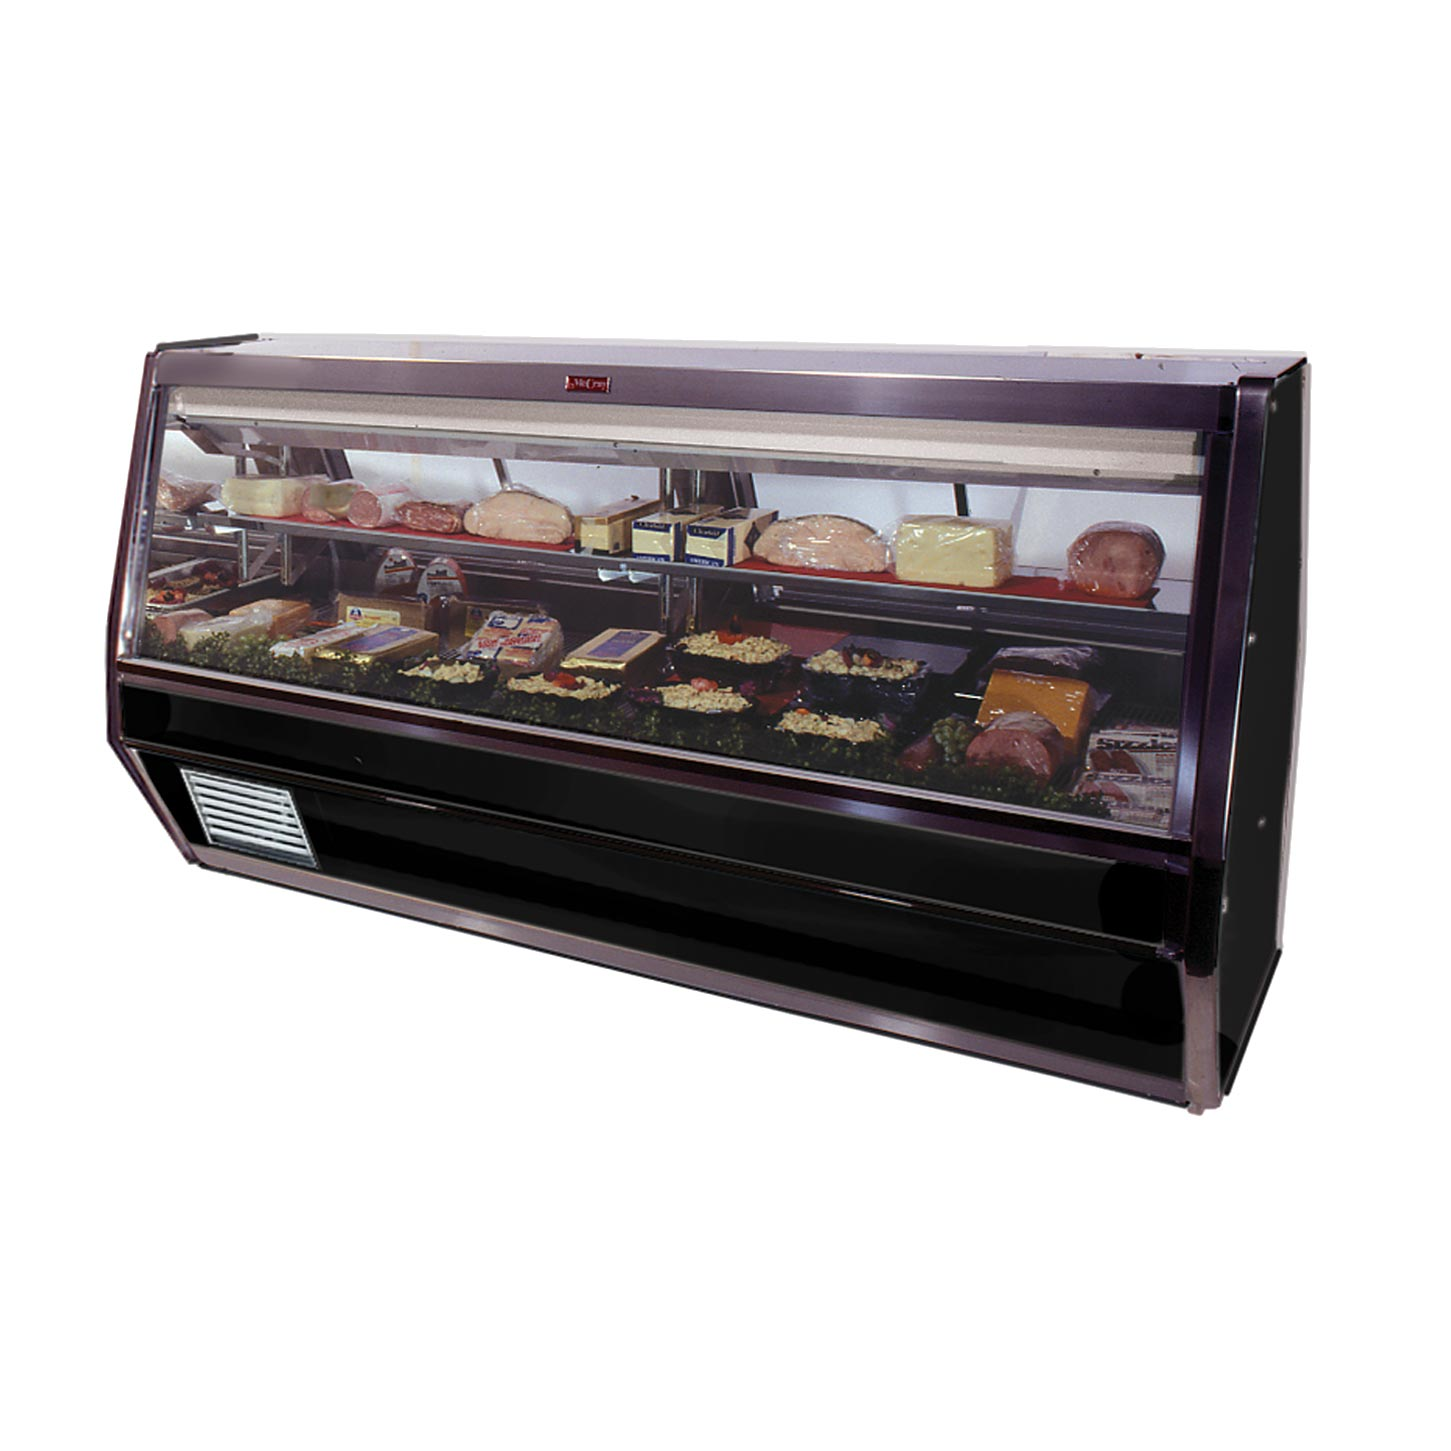 Howard-McCray SC-CDS40E-4-BE-LED display case, refrigerated deli